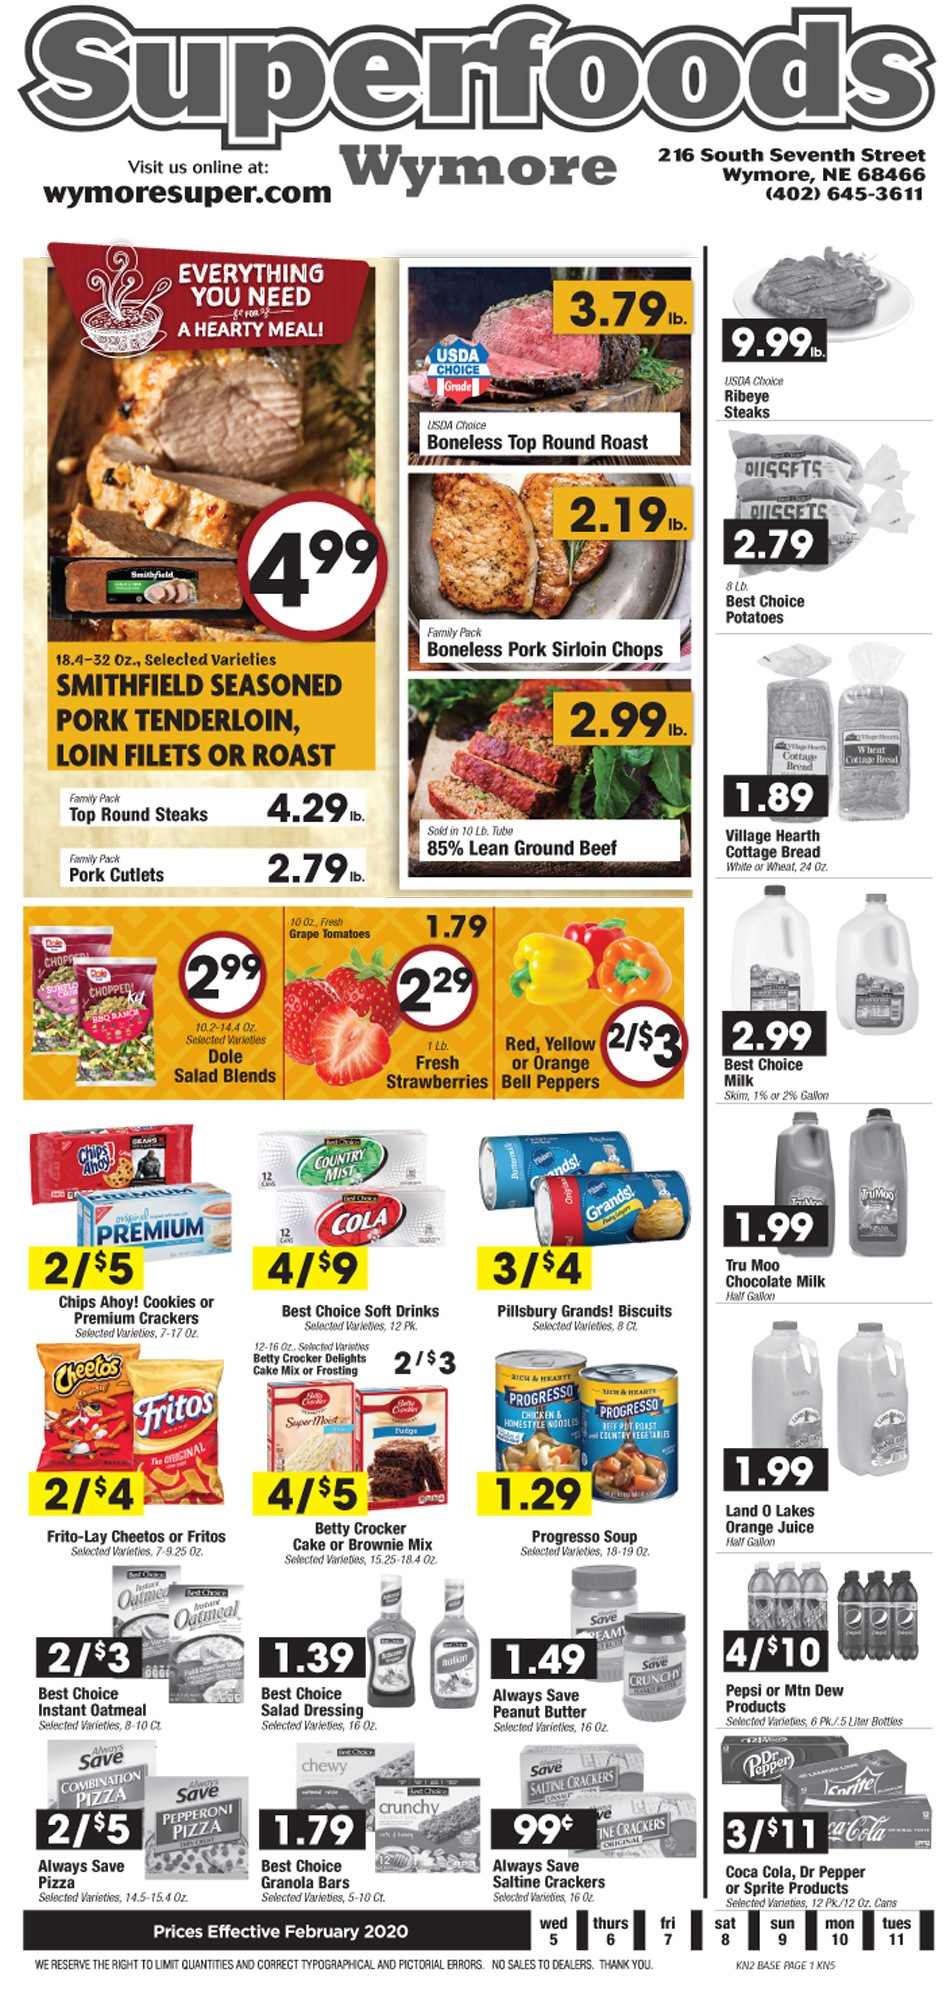 Wymore Super Foods Weekly Specials Page 1 06 06 2018